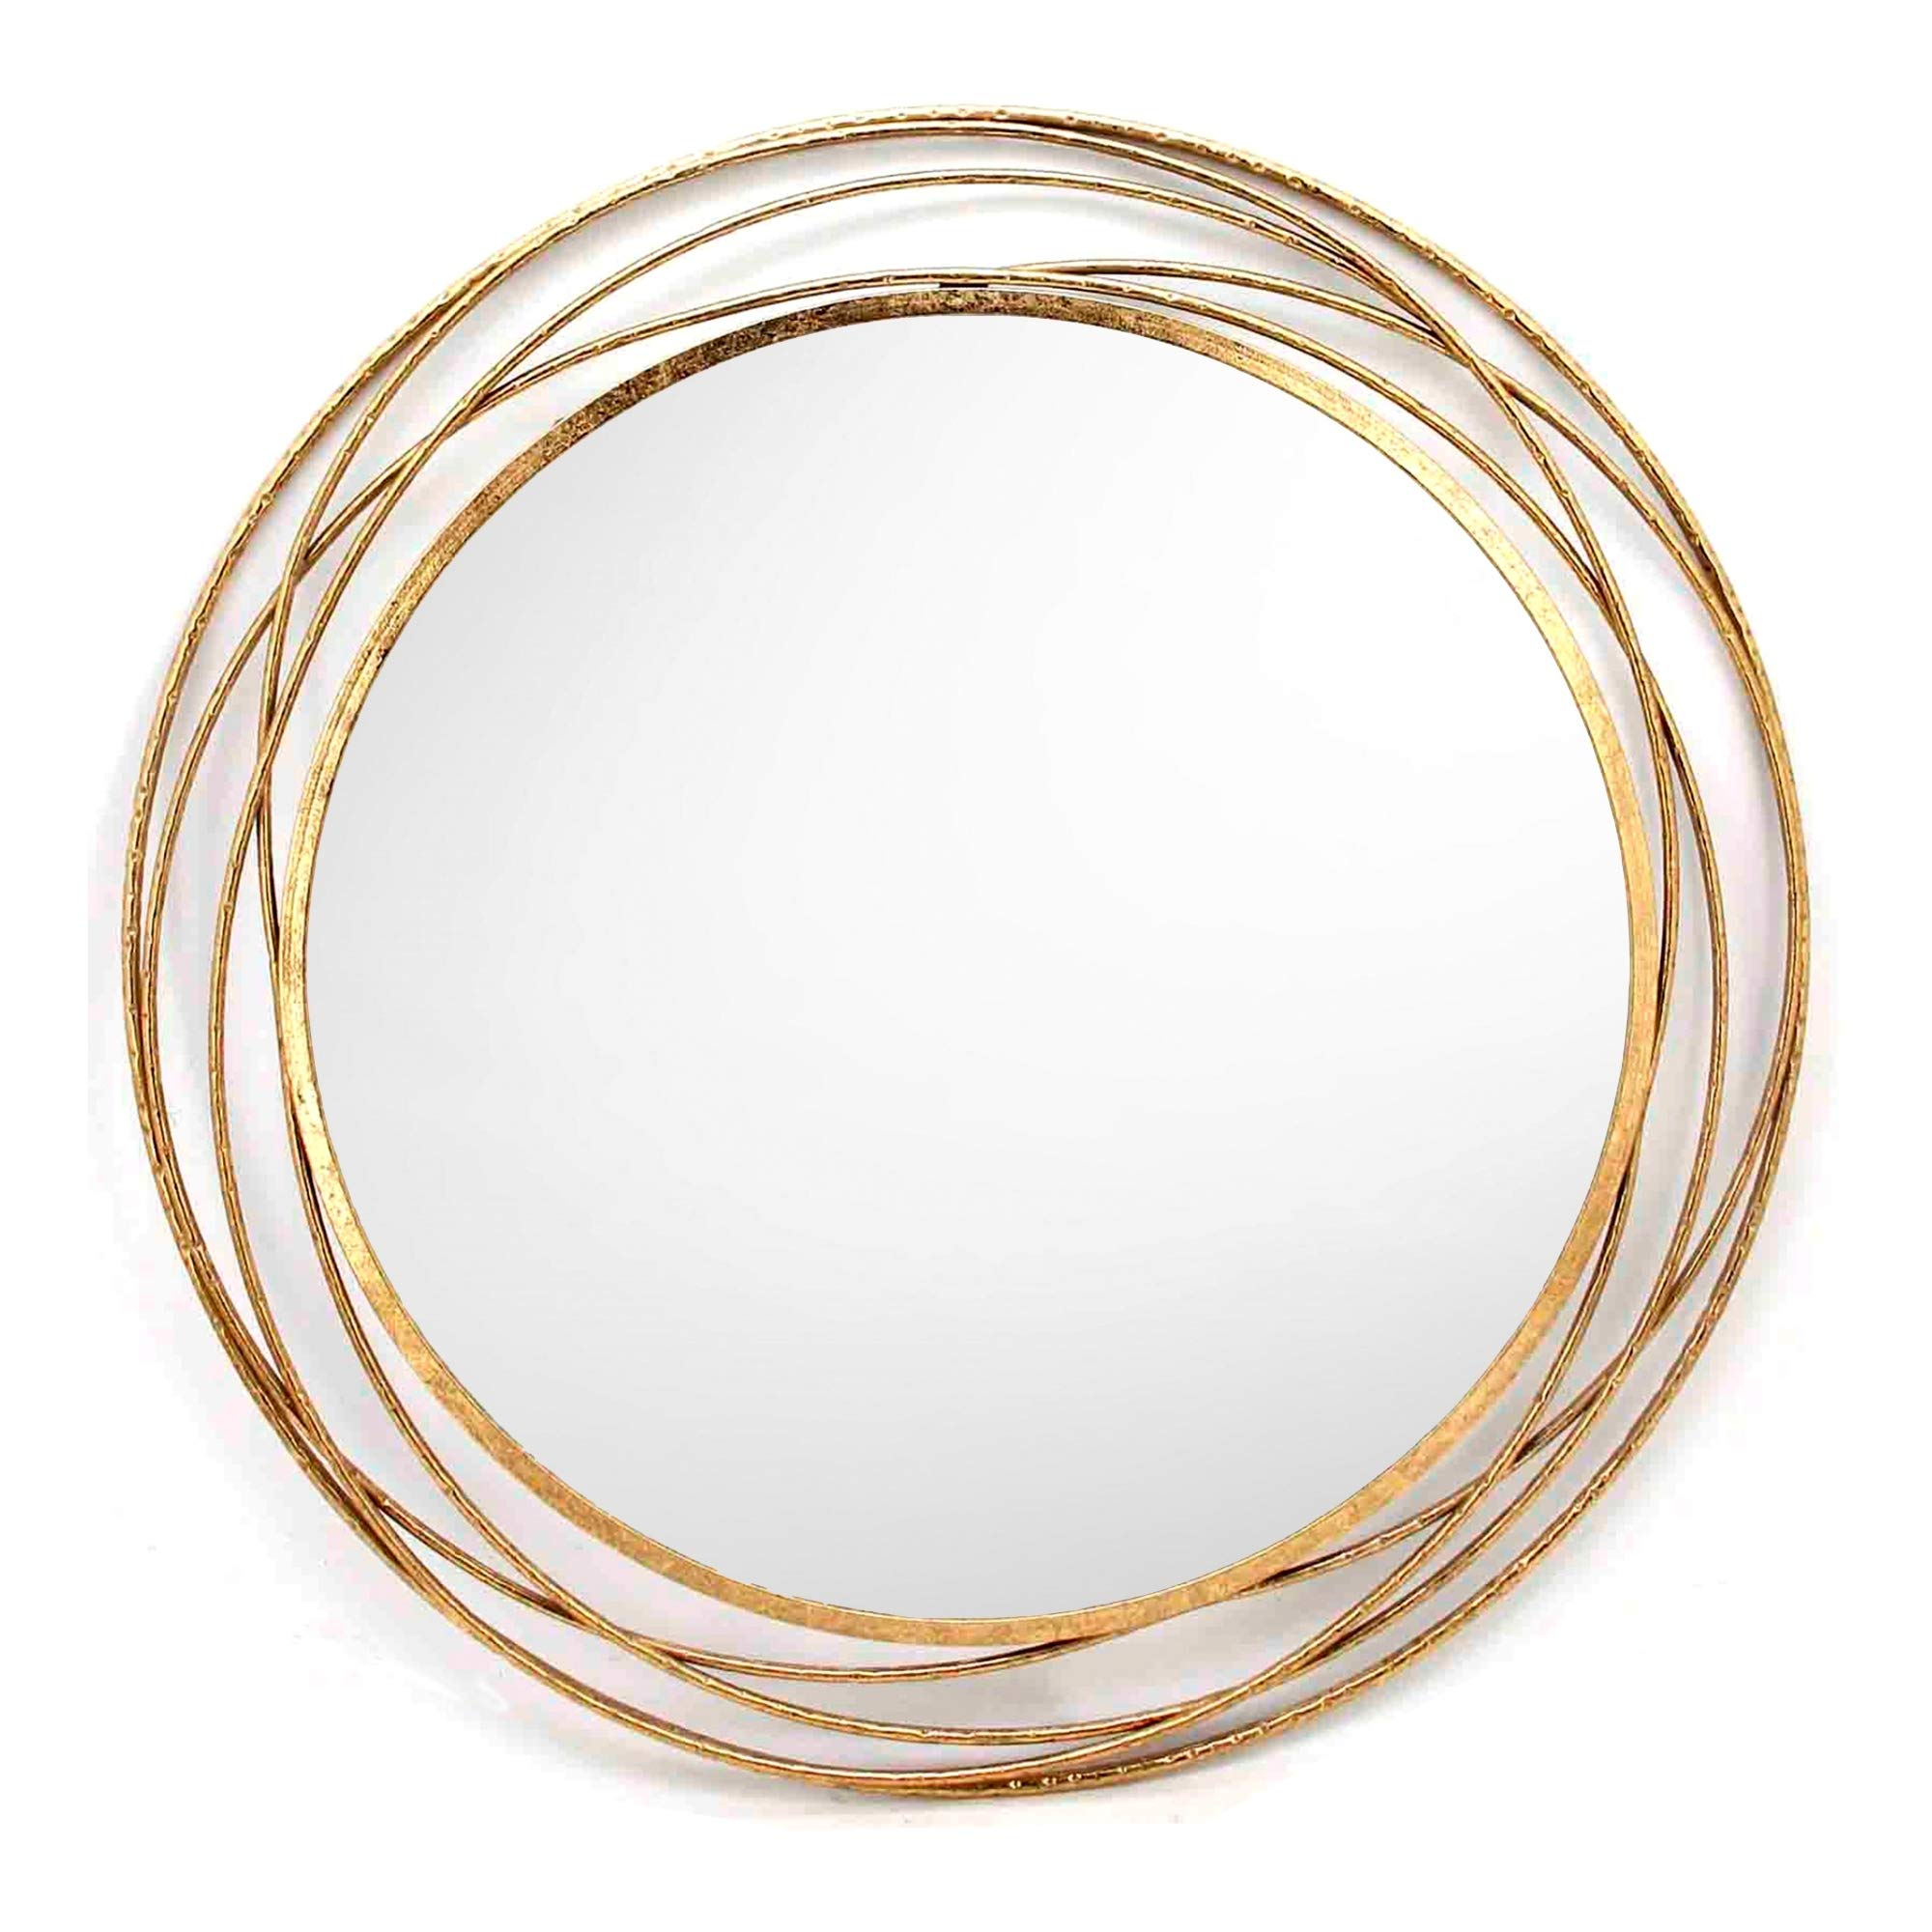 SPAZIO 7109-1 Swirl Wall Mirror, One Size, Antique Gold by SPAZIO (Image #2)